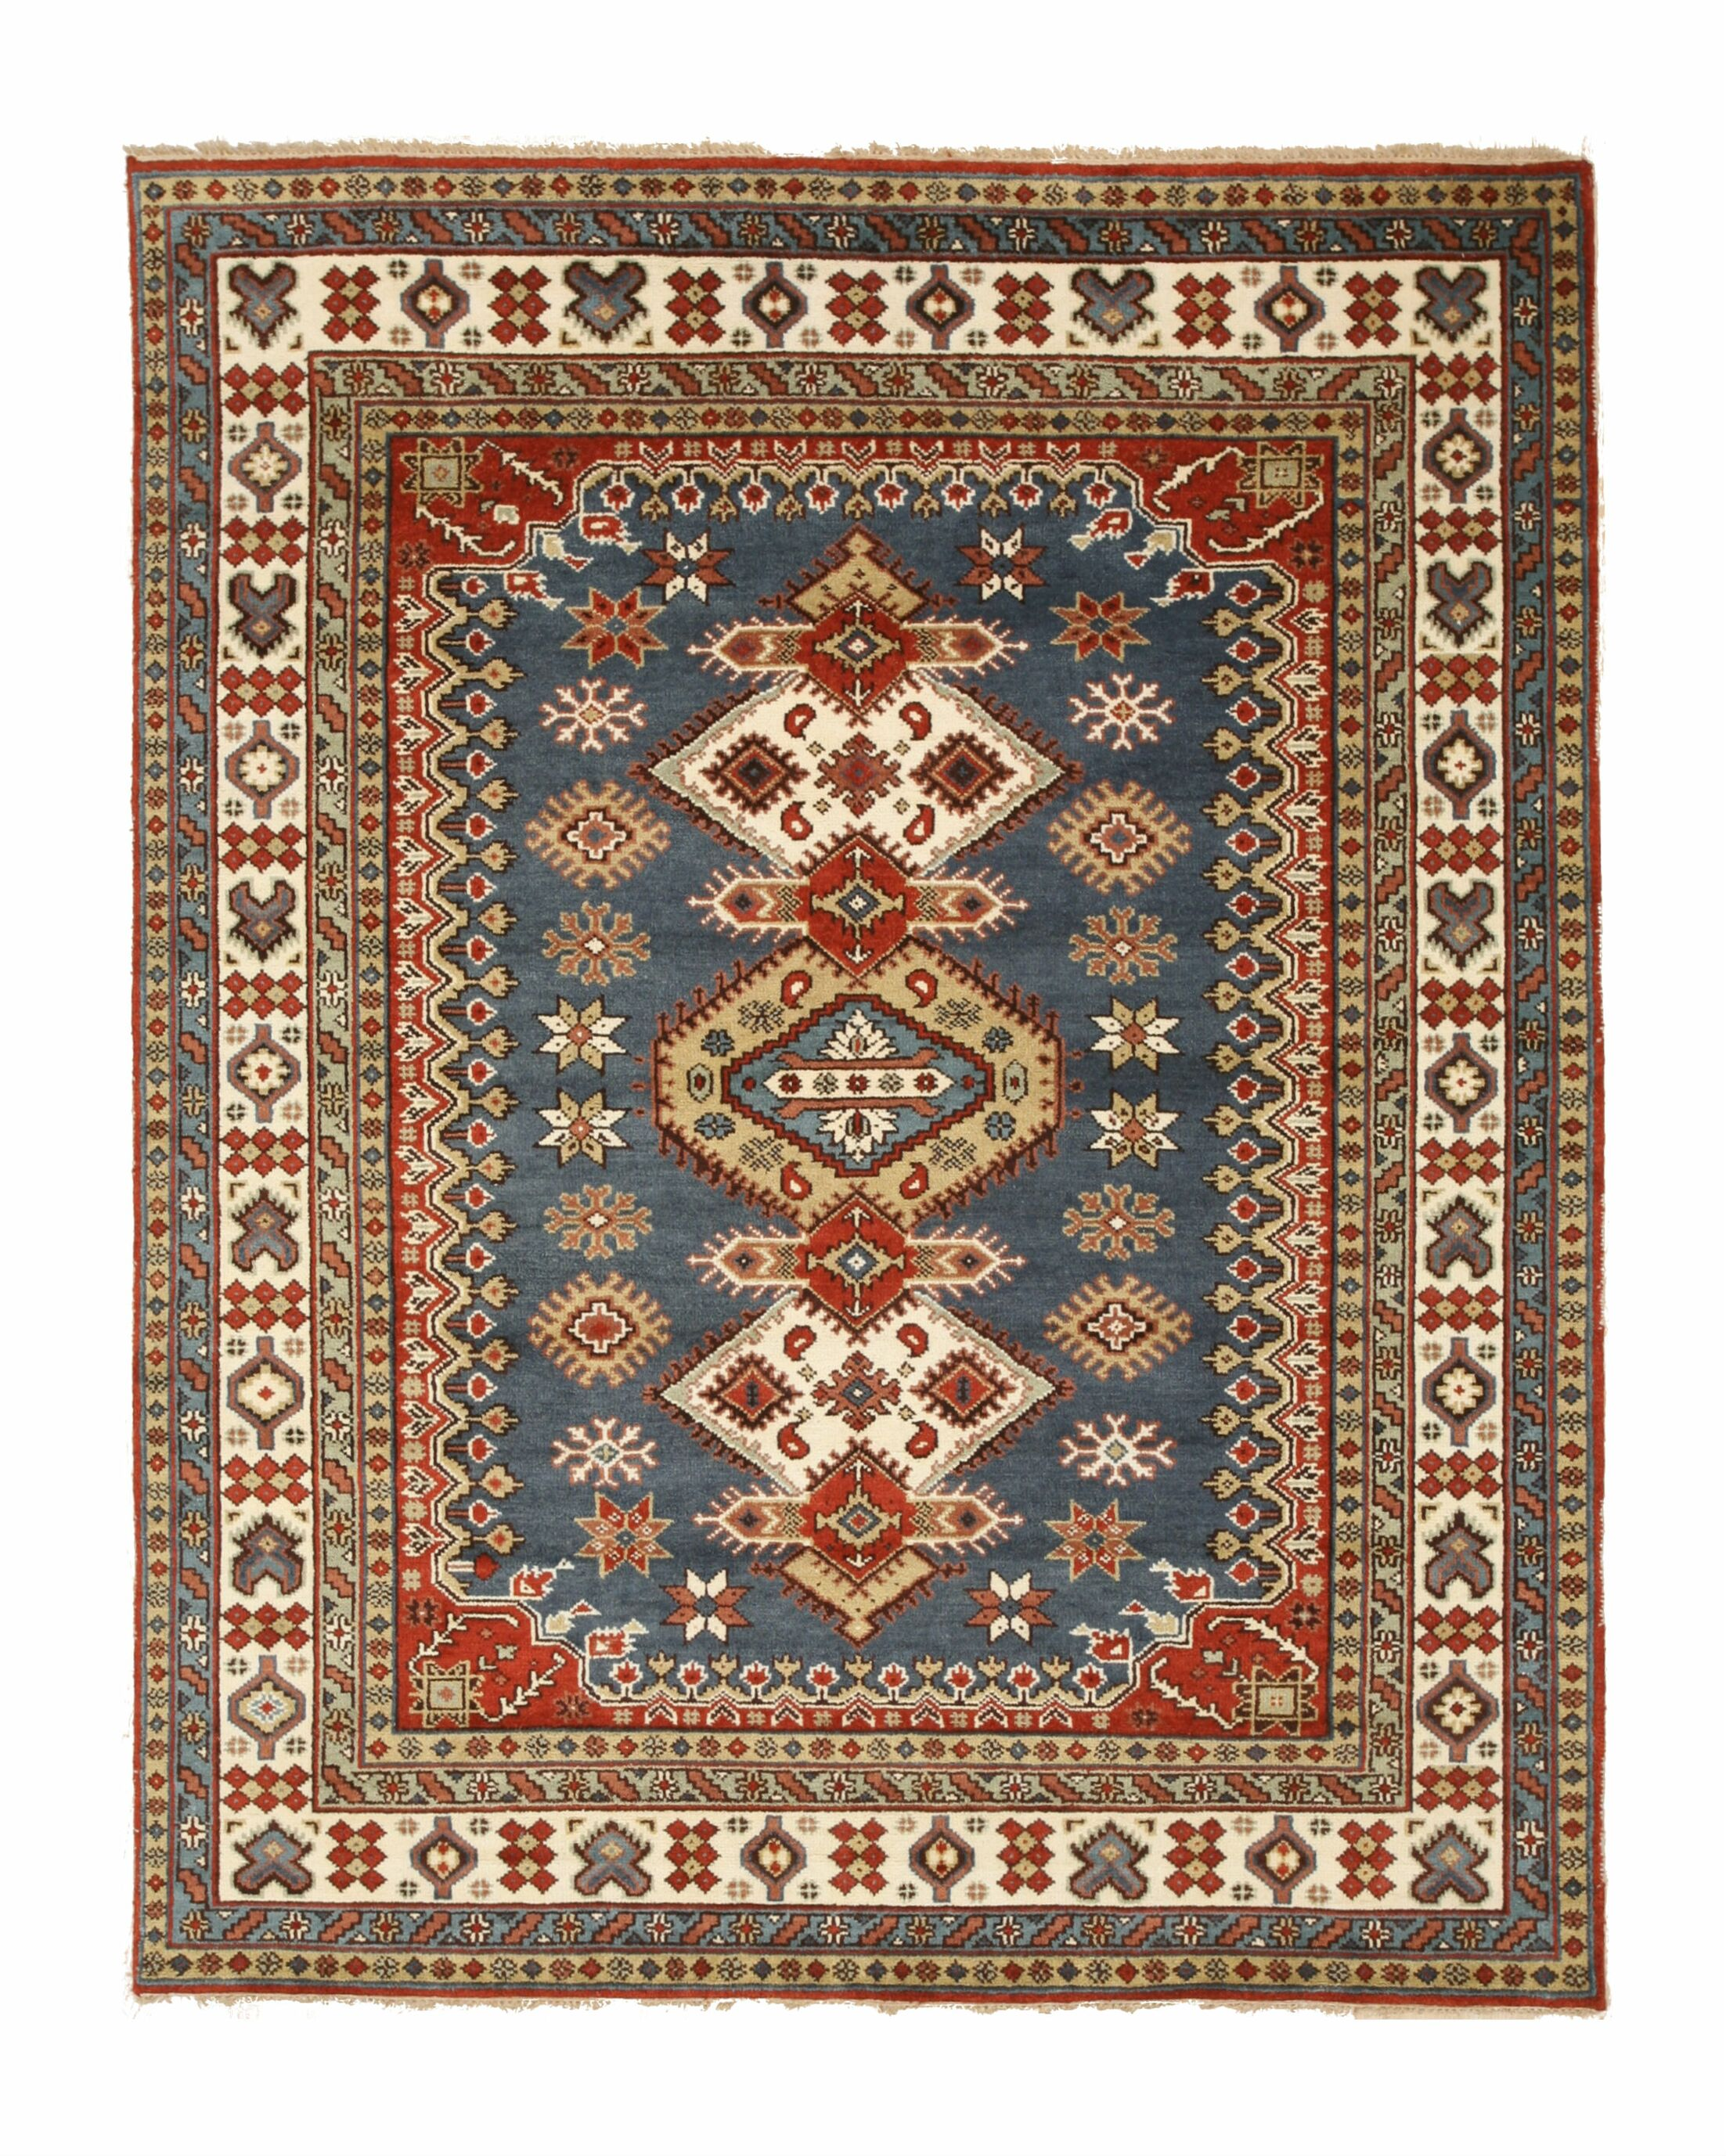 Wallenstein Traditional Oriental Hand-Knotted Wool Blue/Beige Area Rug Rug Size: Rectangle 10' x 14'